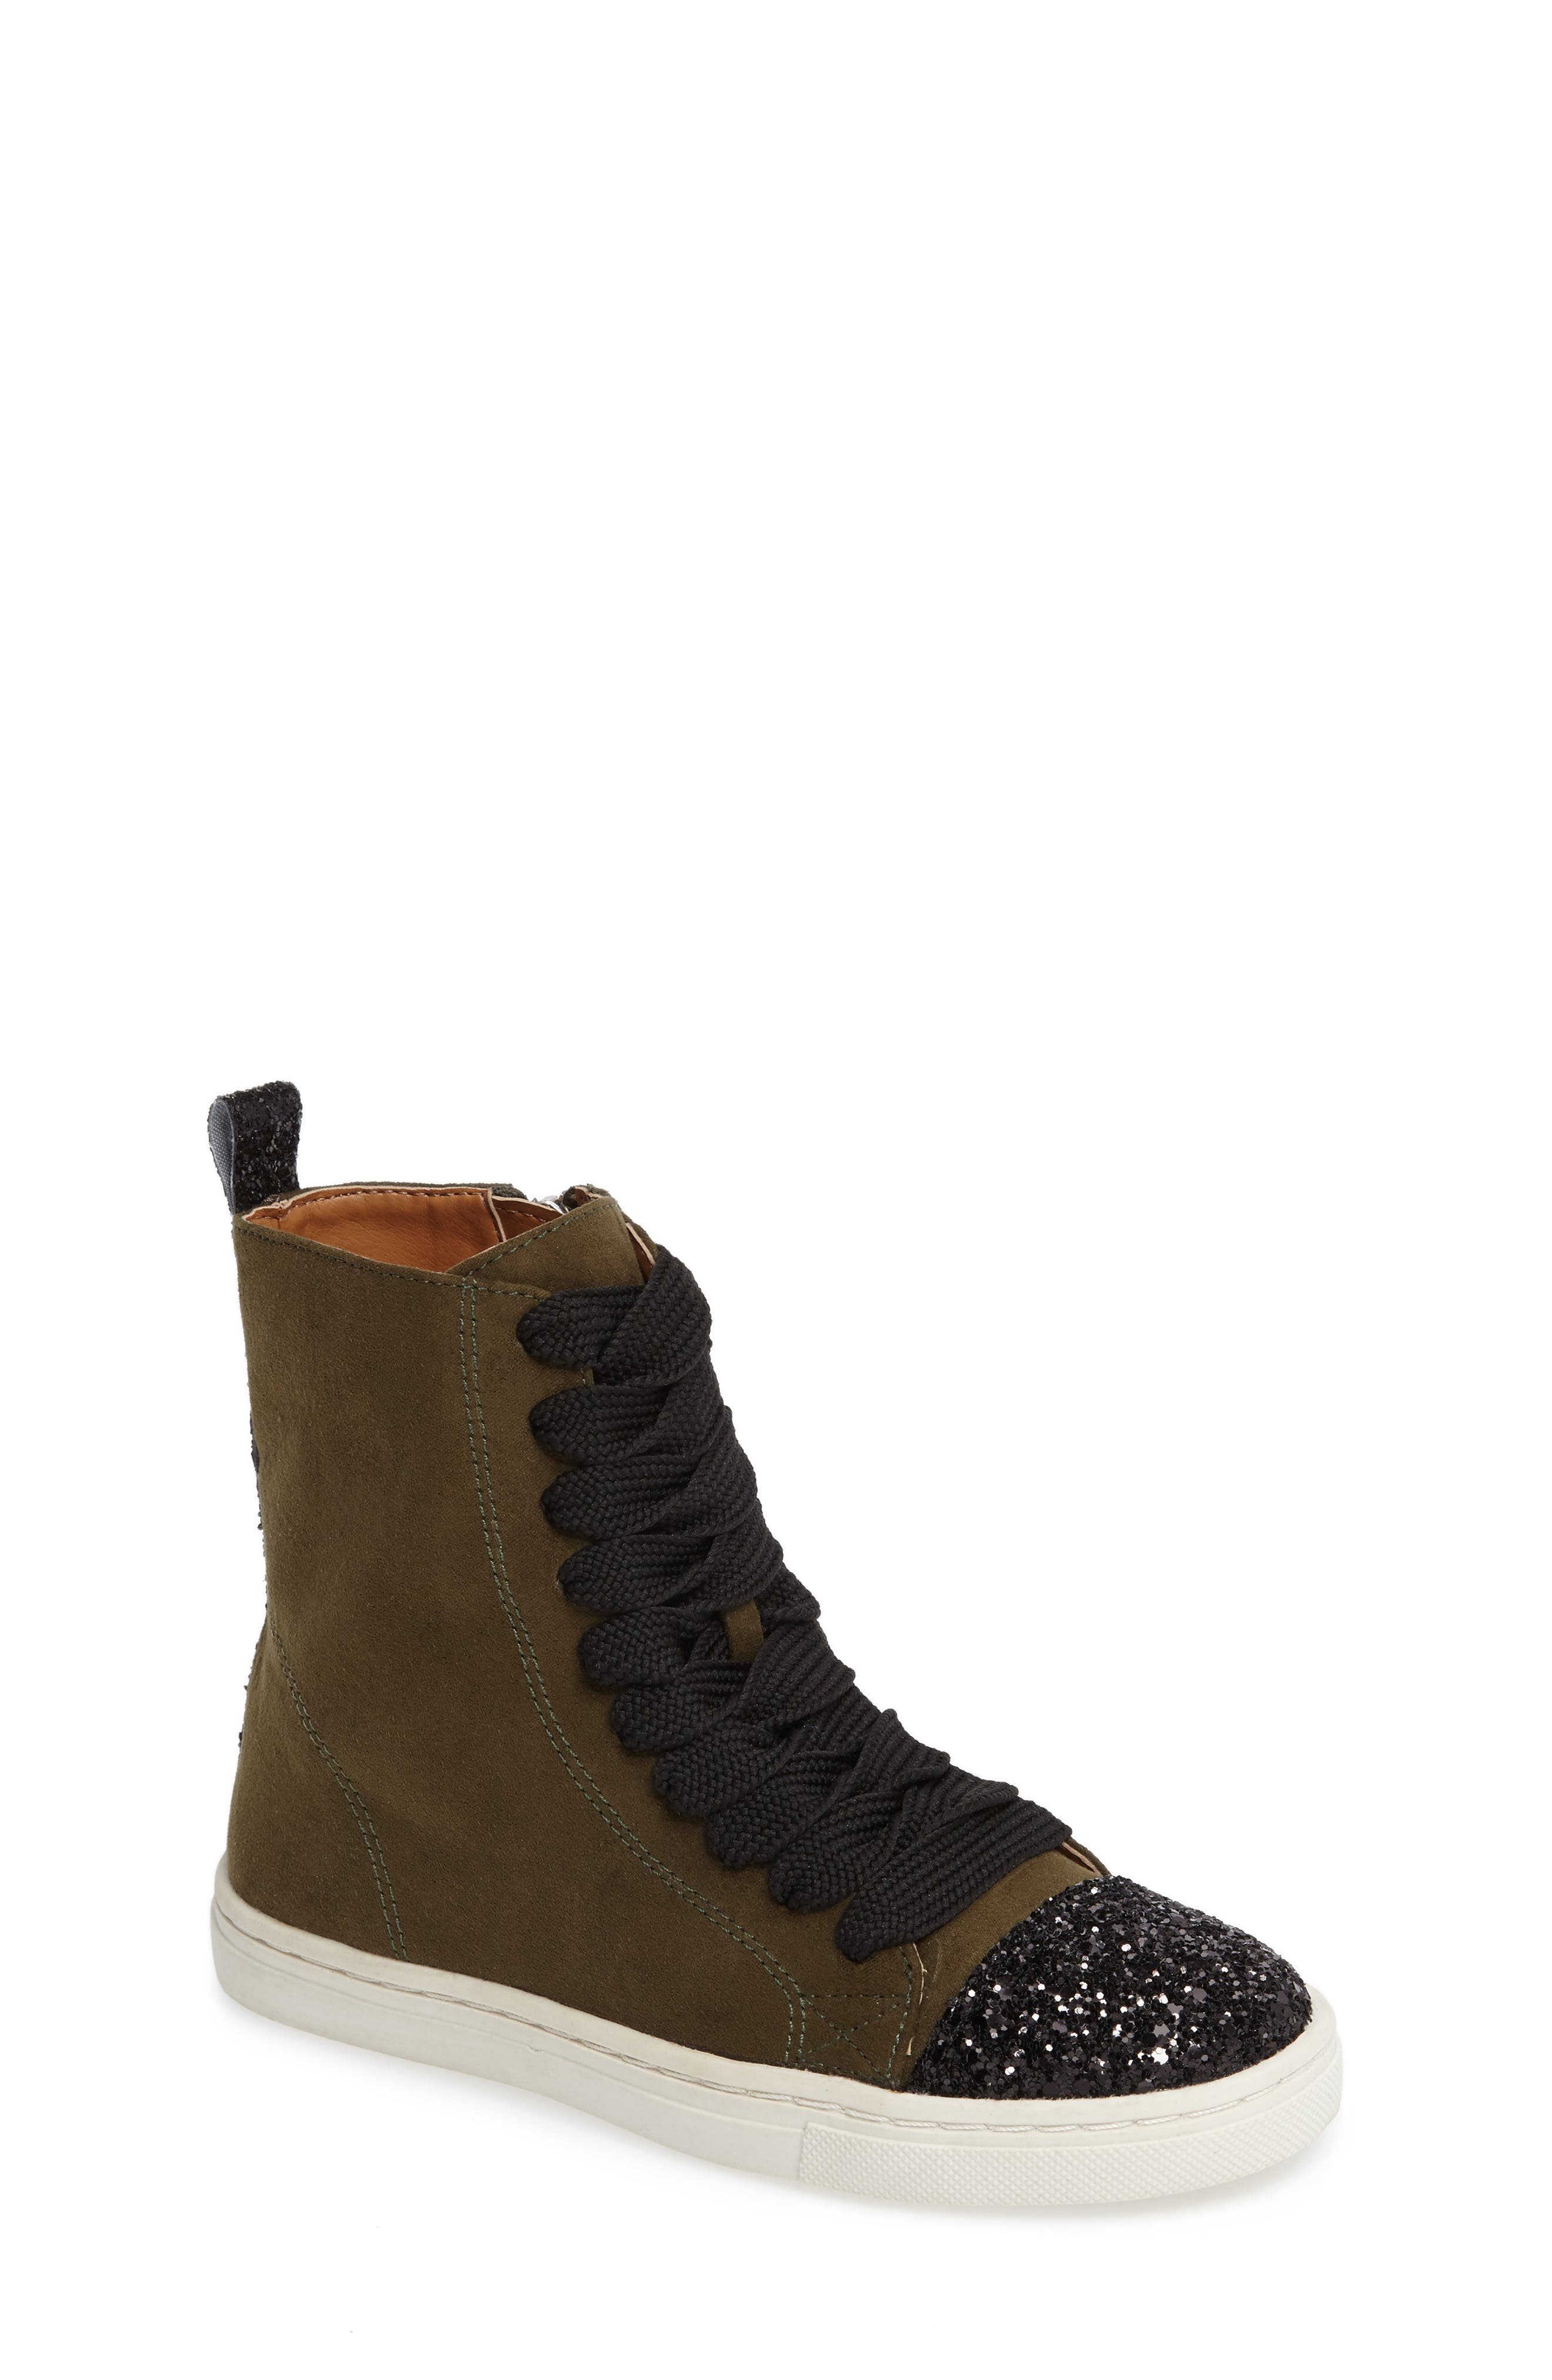 DOLCE VITA Zita High Top Sneaker